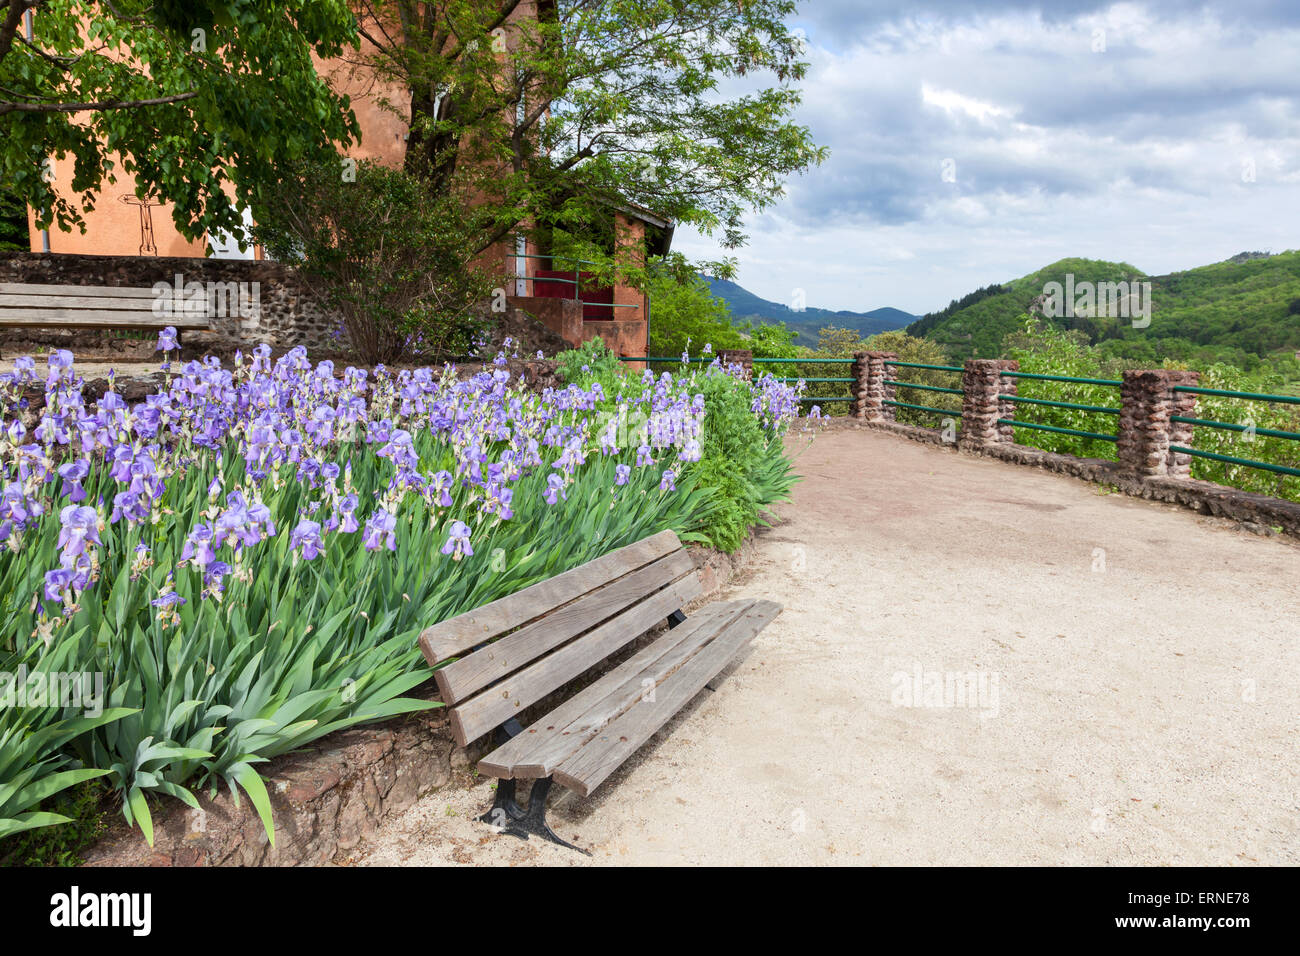 Wooden bench at the viewpoint in village Thueyts of the Ardeche Region in southern France - Stock Image